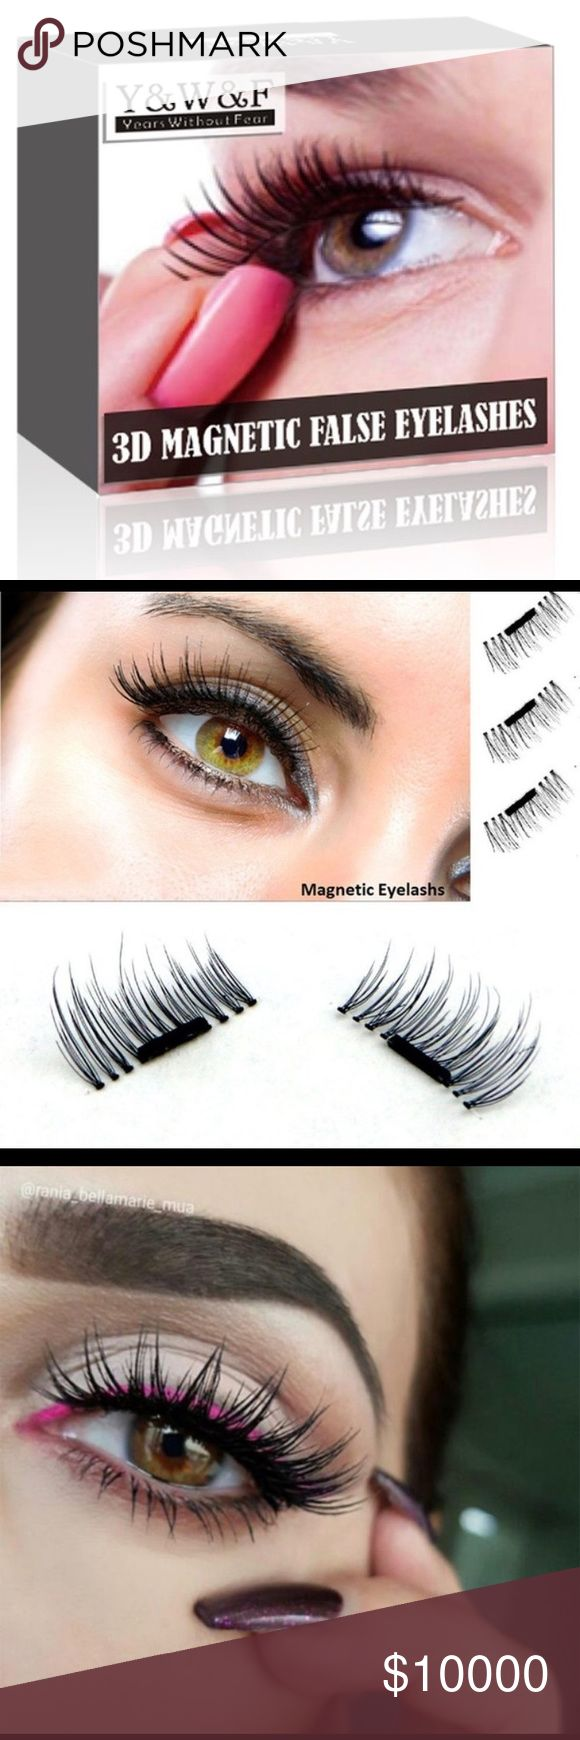 pre orders only 3d magnetic false eye lashes nwt